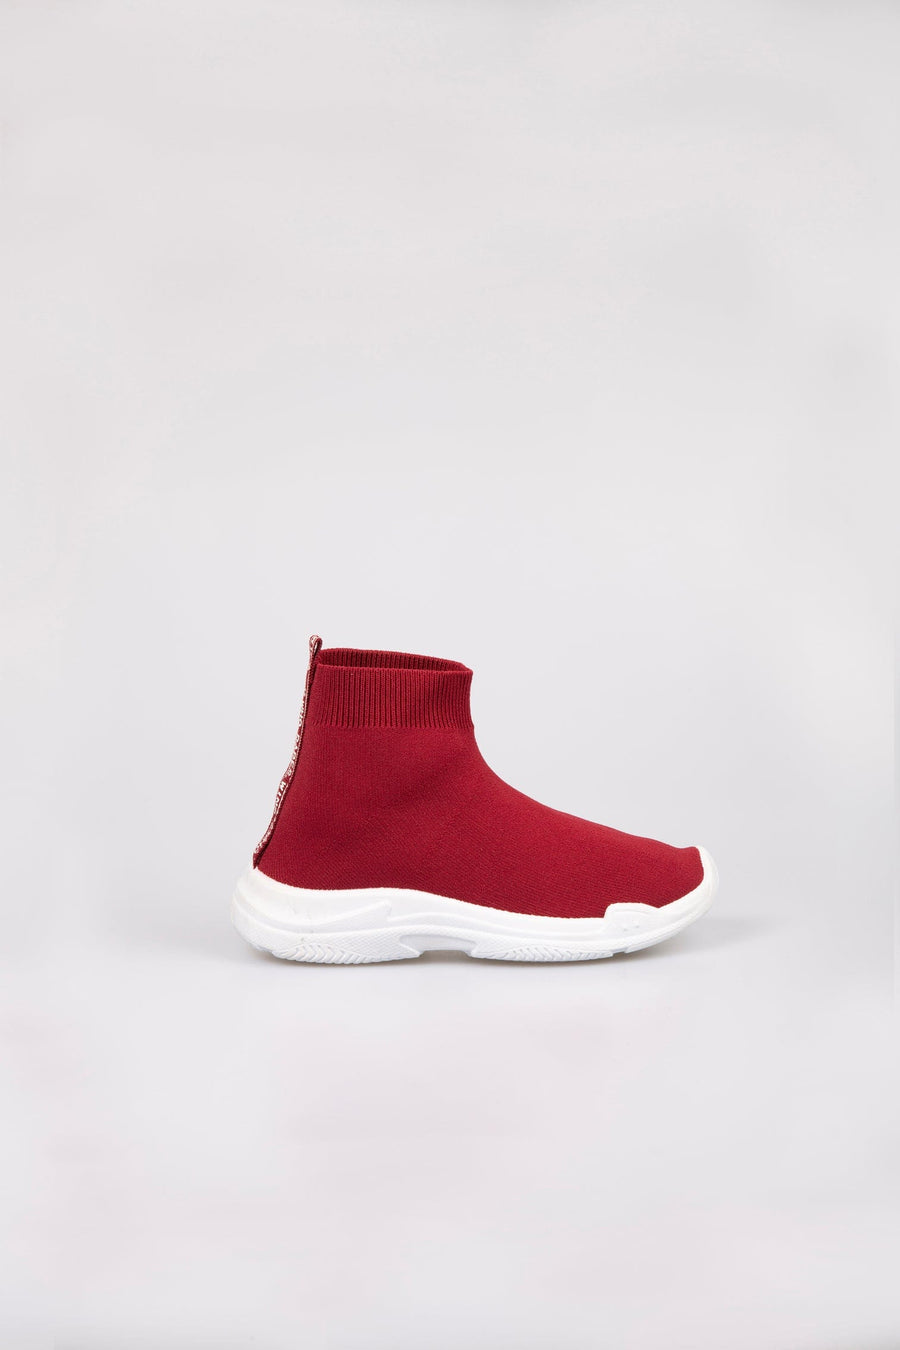 Avi Sock Trainers Red SS20 Little Attitude Spring Summer 20